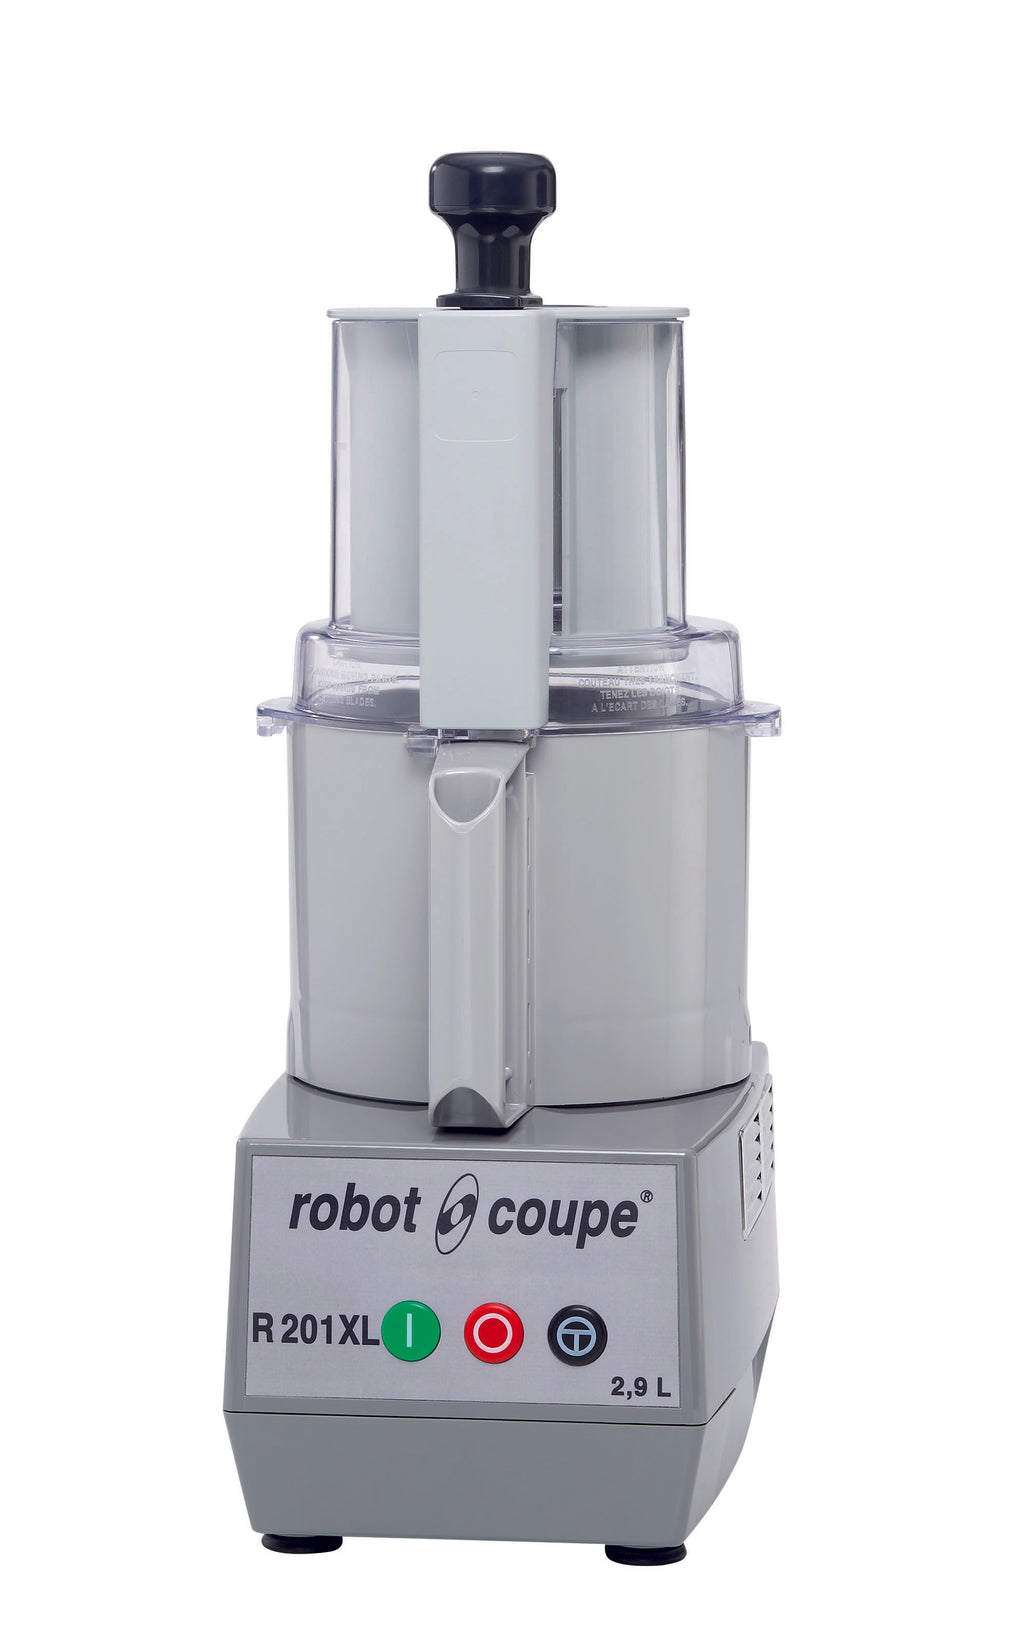 Robot Coupe R 201 XL Cutter & Vegetable slicer